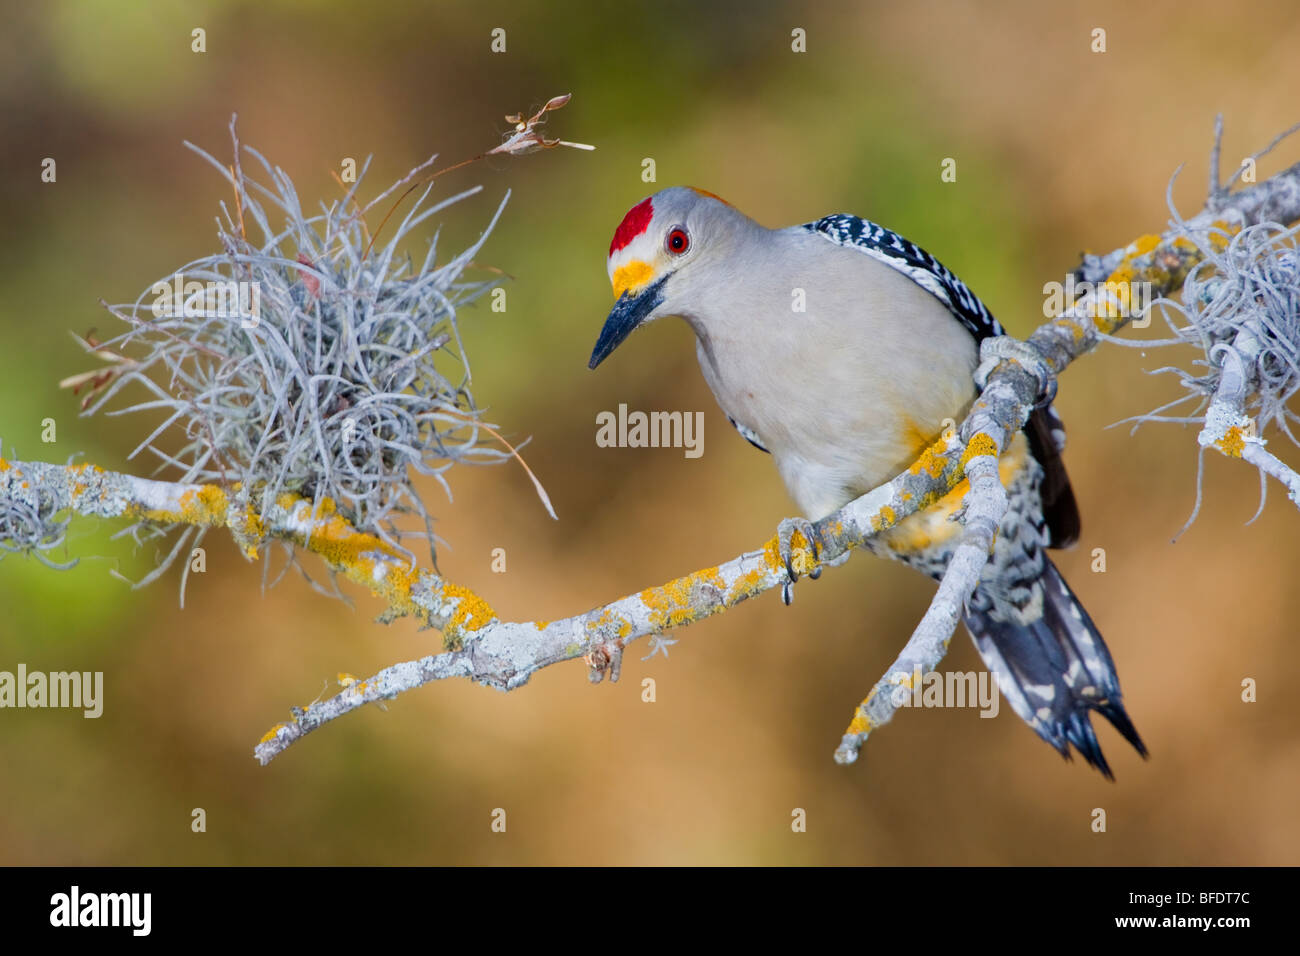 Golden-fronted woodpecker (Melanerpes aurifrons) perched on a branch in the Rio Grande Valley in Texas, USA Stock Photo